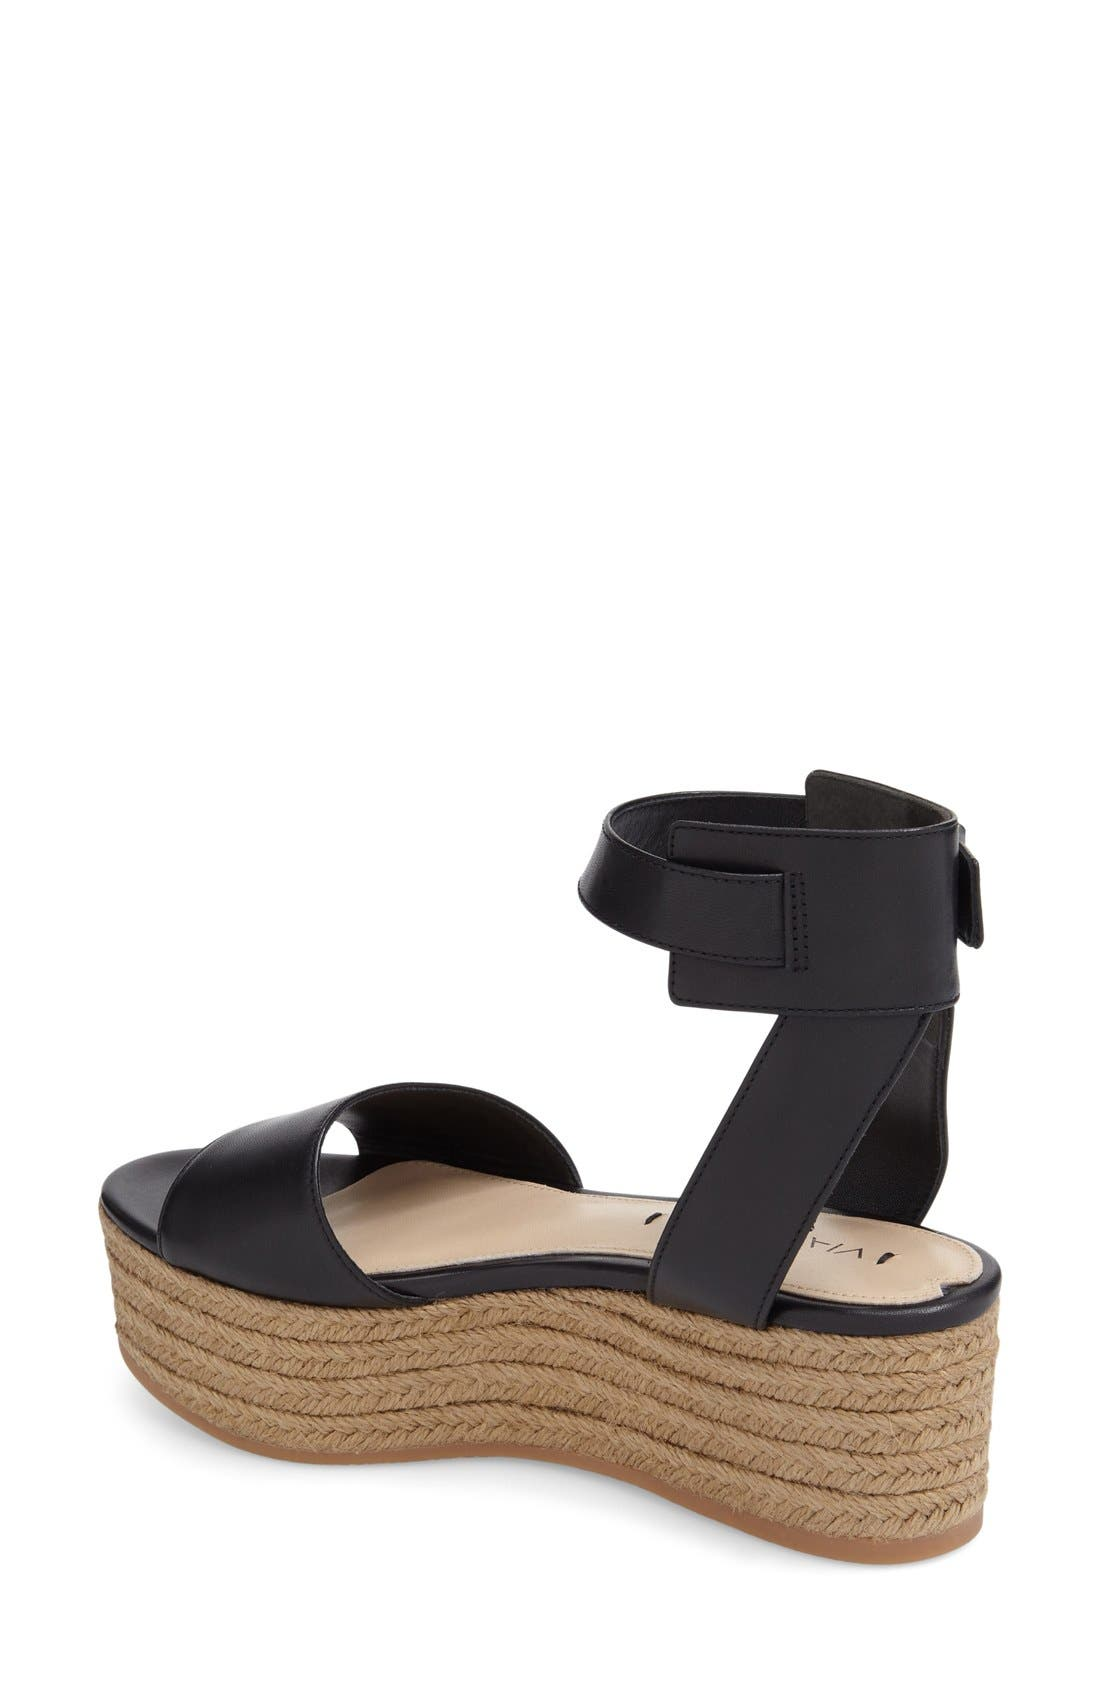 'Nemy' Platform Sandal,                             Alternate thumbnail 2, color,                             001